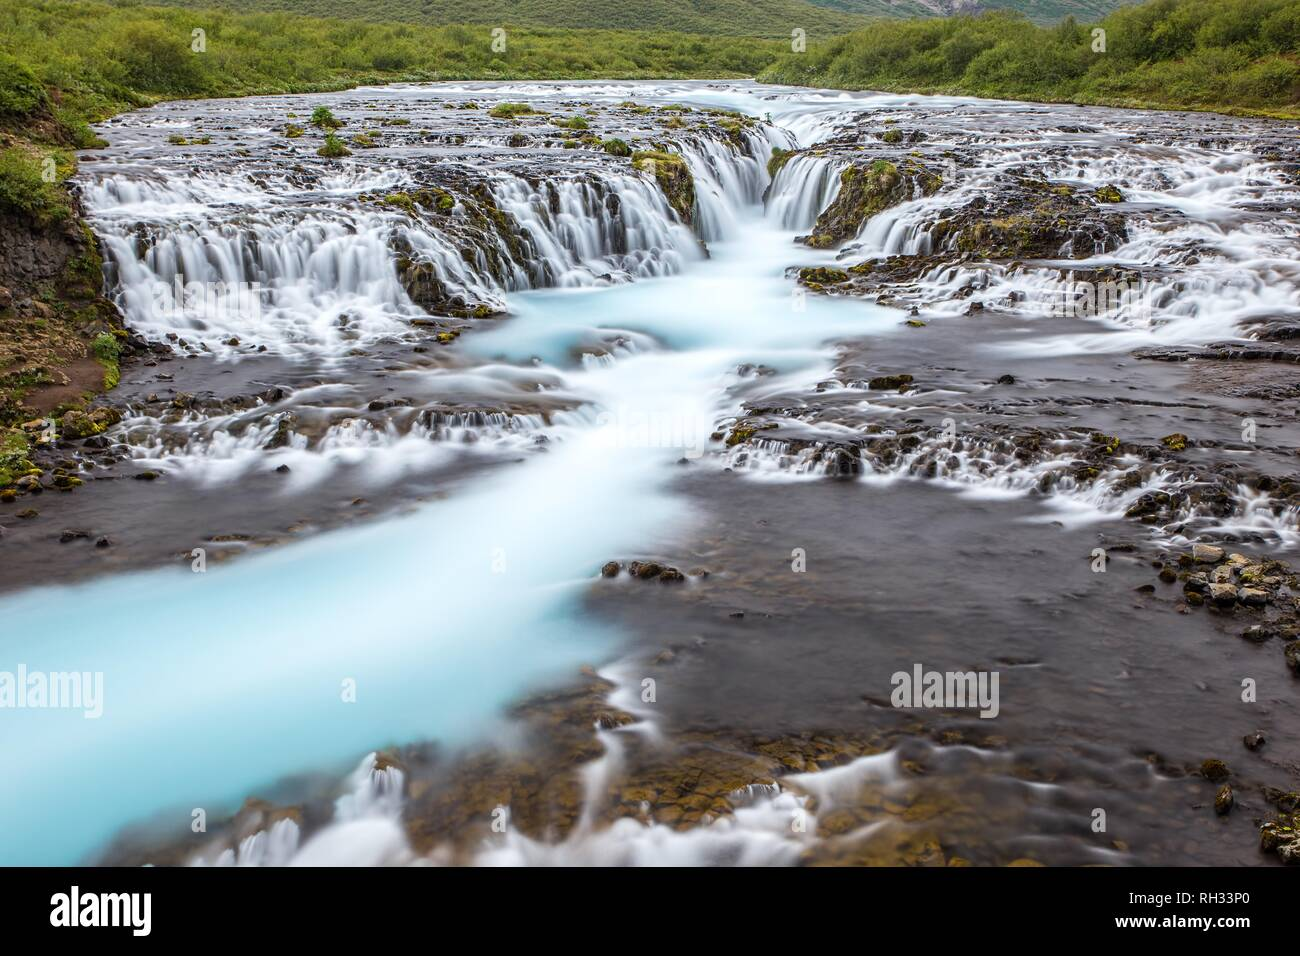 Bright powerful Bruarfoss waterfall in Iceland with cyan water. - Stock Image